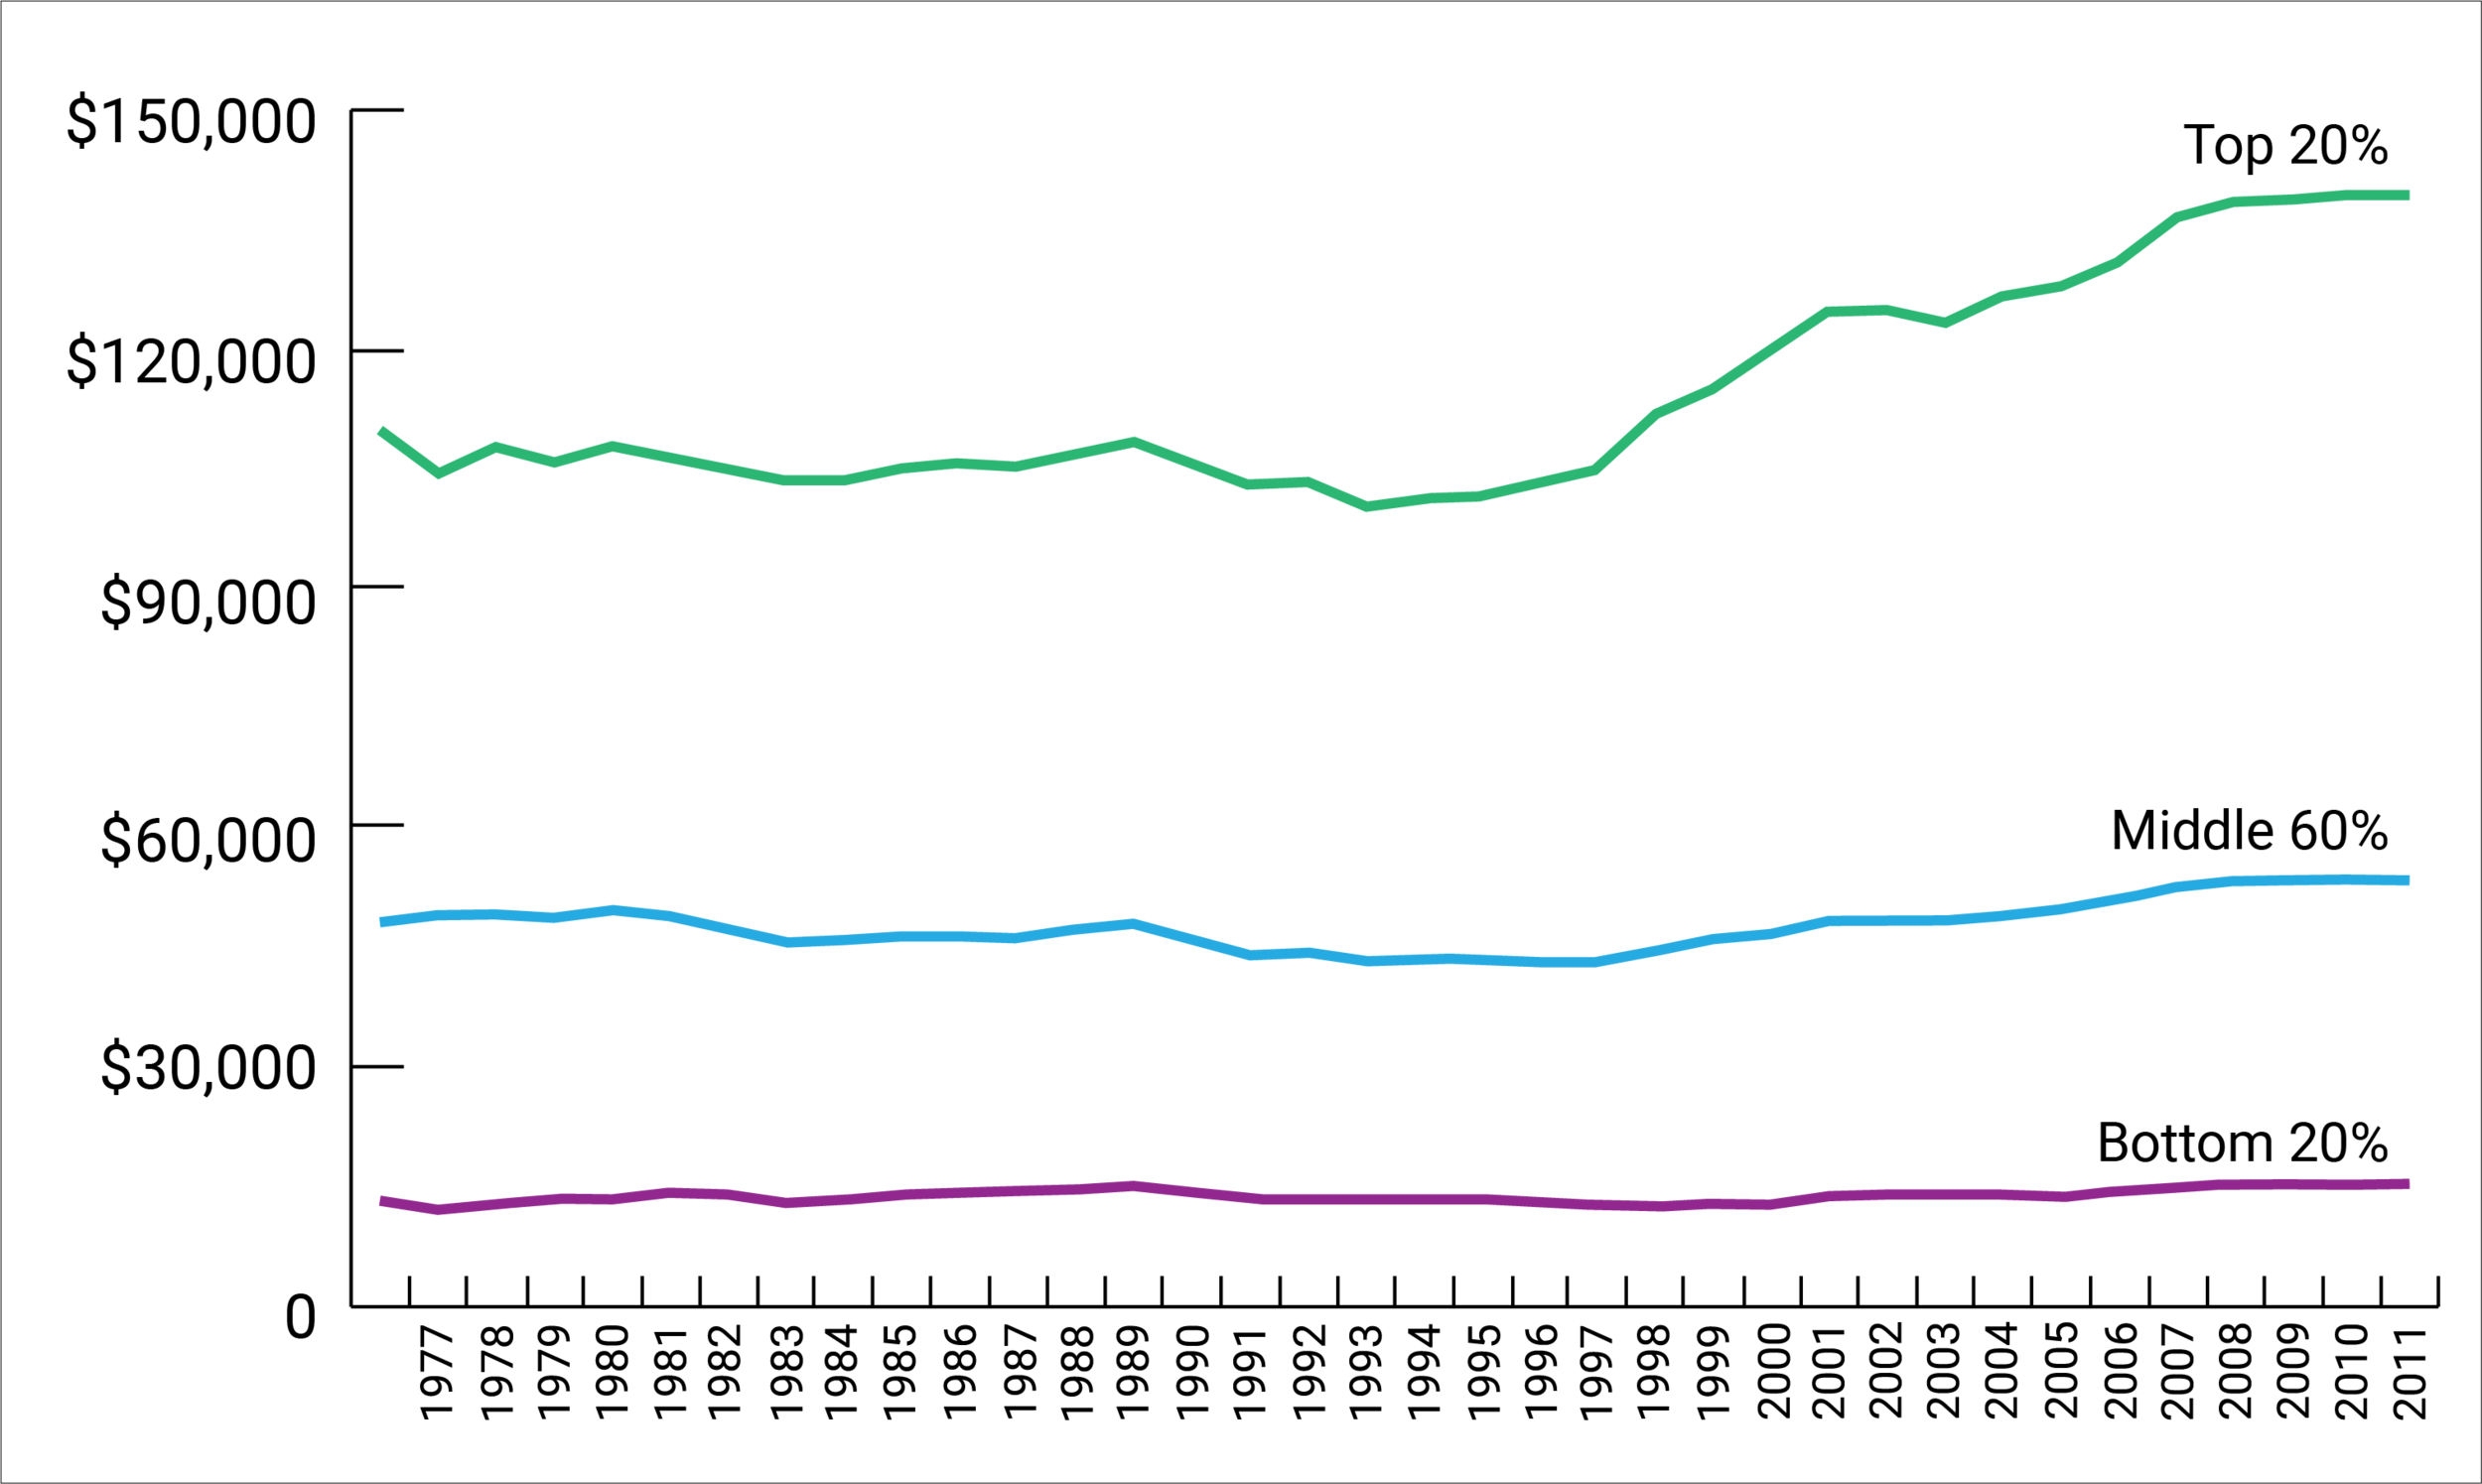 Figure 2: Average after tax income, by income group, Canada 1976-2011 (2011 constant dollars). Source: Employment and Social Development Canada, 2015